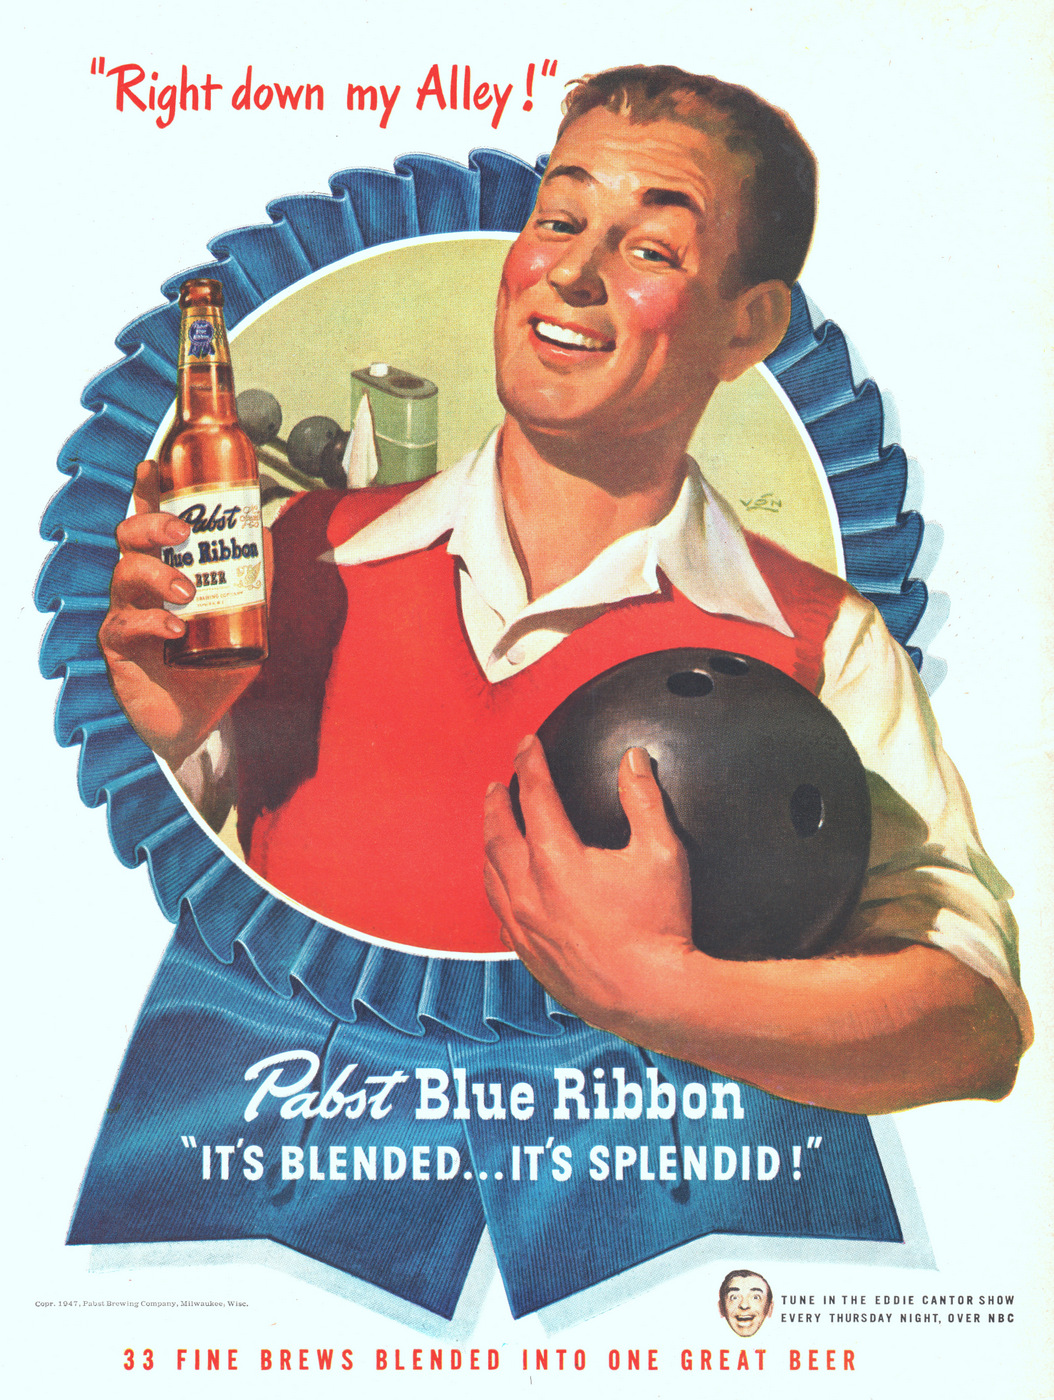 Illustration of a man holding Pabst Blue Ribbon beer and ball in another hand.